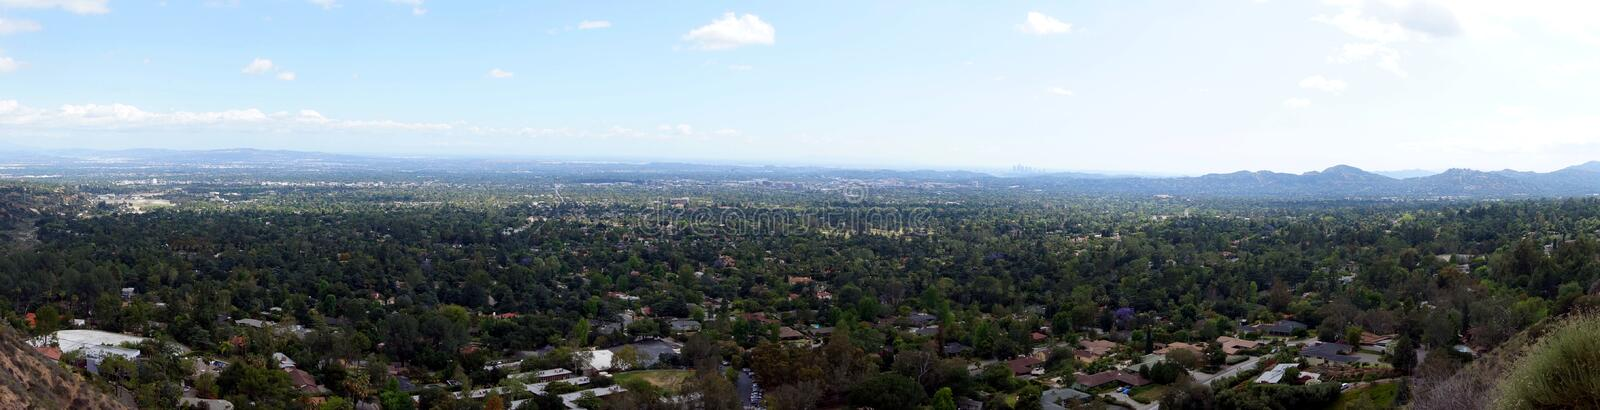 Vista panorâmica de San Fernando Valley fotos de stock